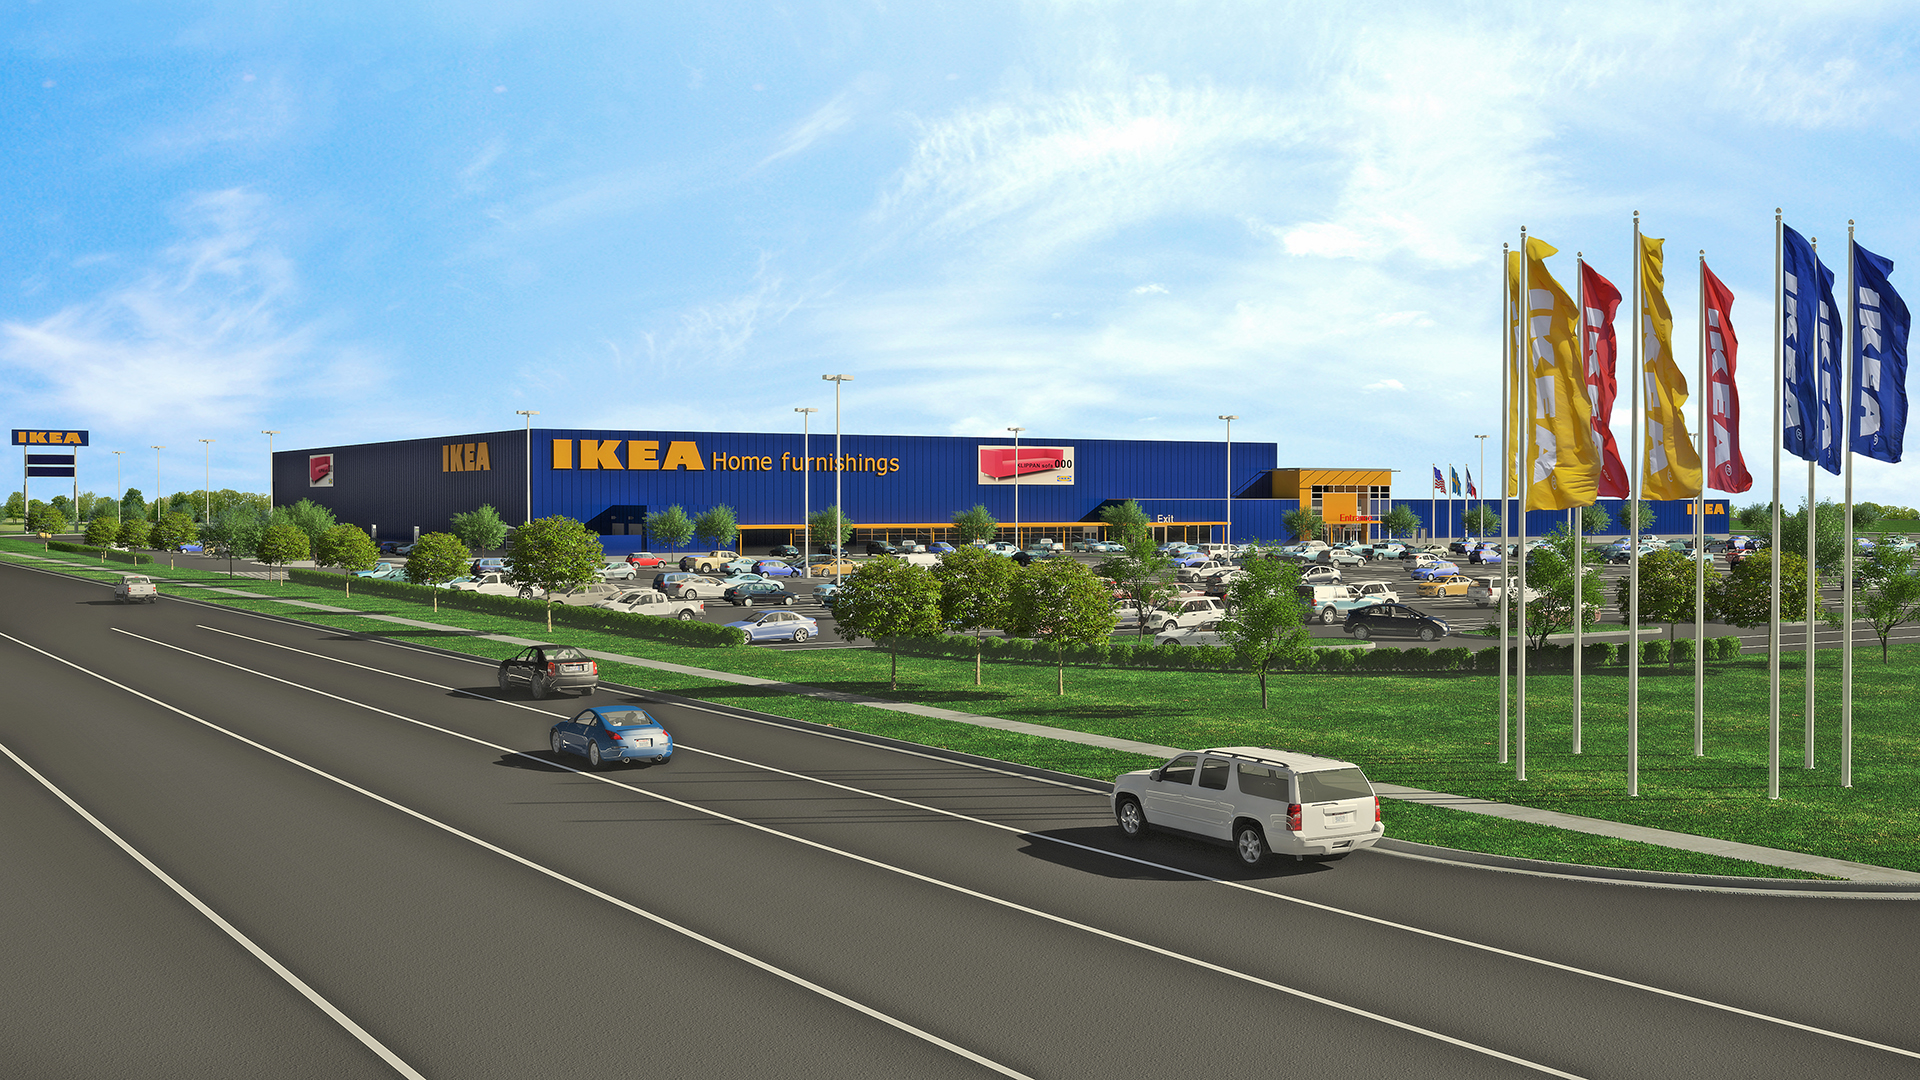 ikea grand prairie to open its doors in december. Black Bedroom Furniture Sets. Home Design Ideas